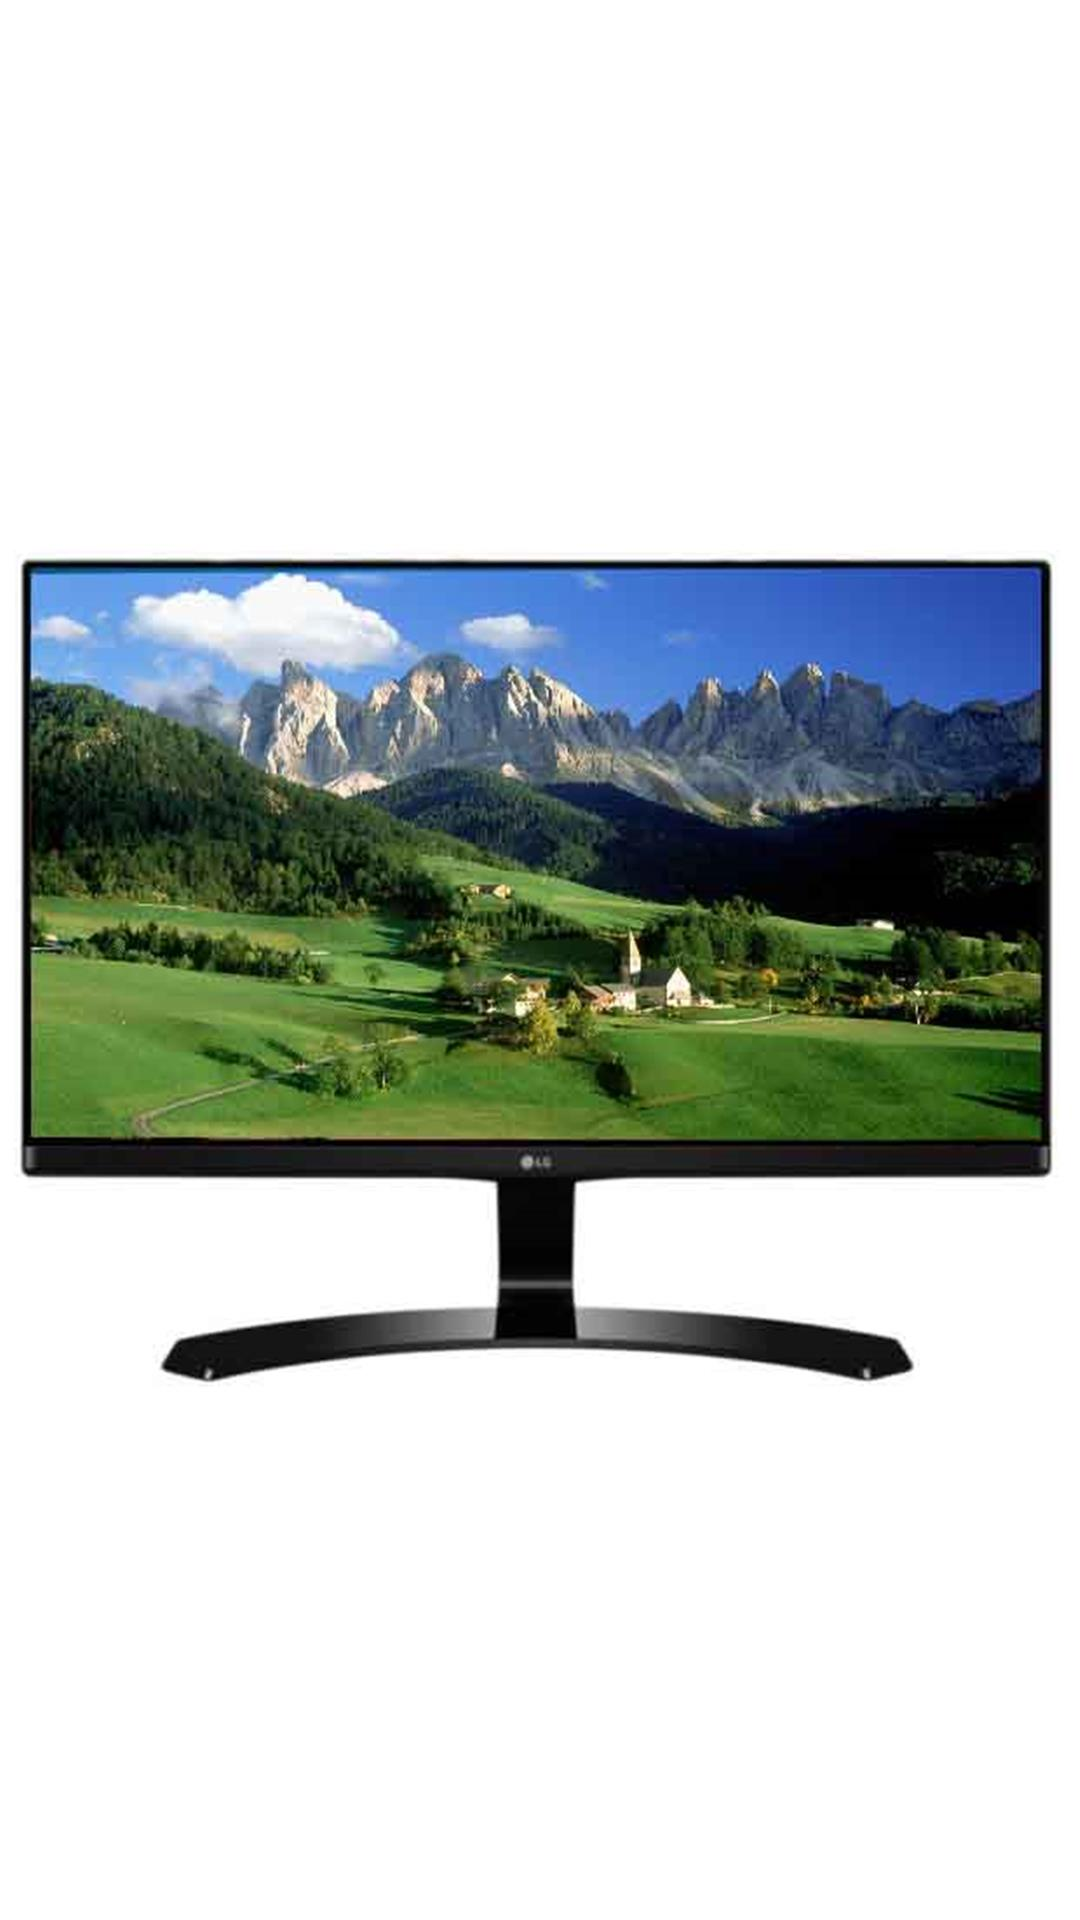 LG 22MP68VQ-P LED (21.5 inch) Full HD Monitor